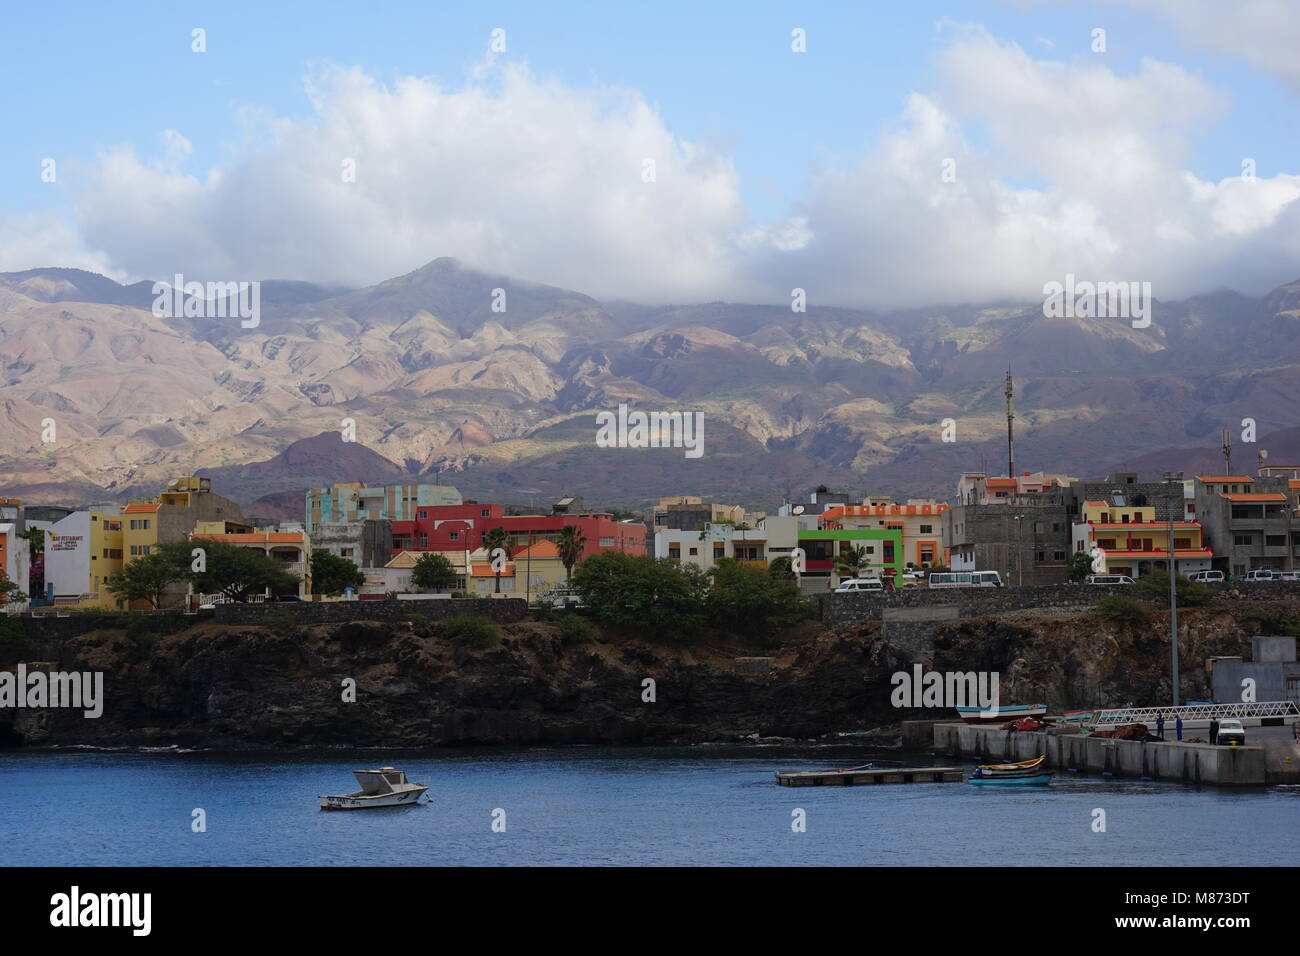 View to Port of Porto Novo, Santo Antao Island, Cape Verde - Stock Image